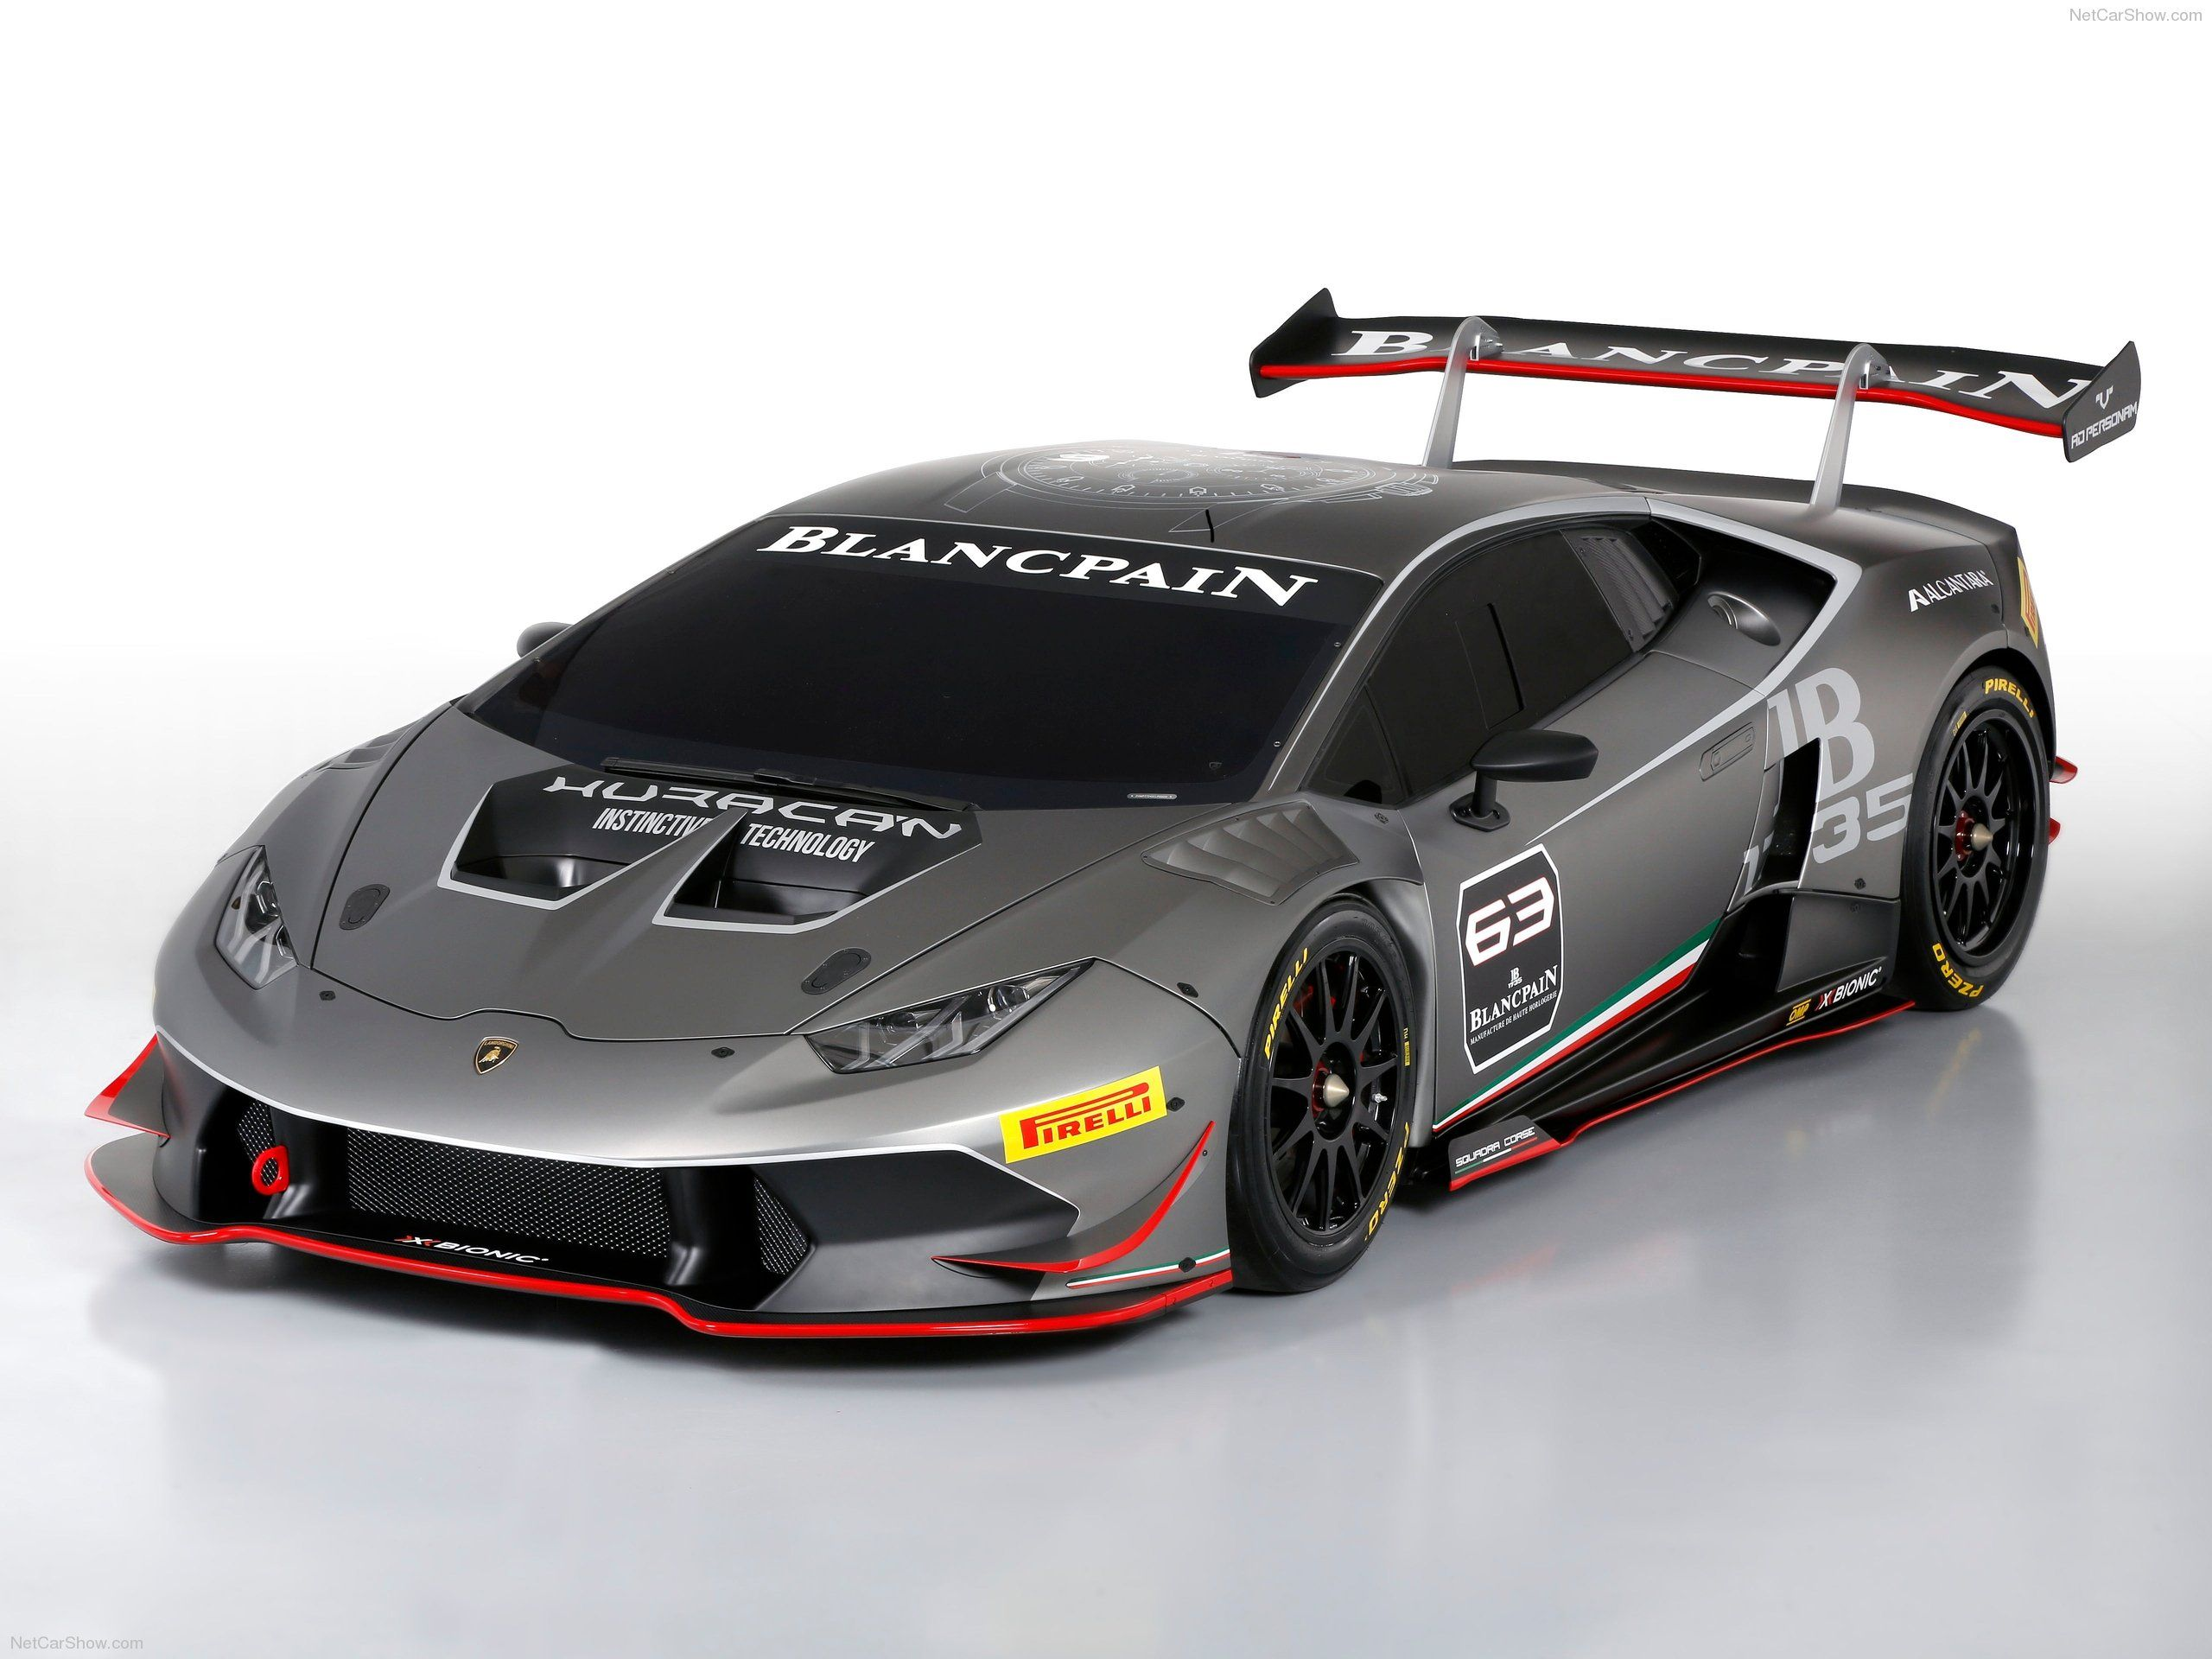 Exceptional The Lamborghini Huracán Super Trofeo Race Car Has Made Its Official Debut  At This Yearu0027s Pebble Beach Automotive Week. Check Out The Photos Here.